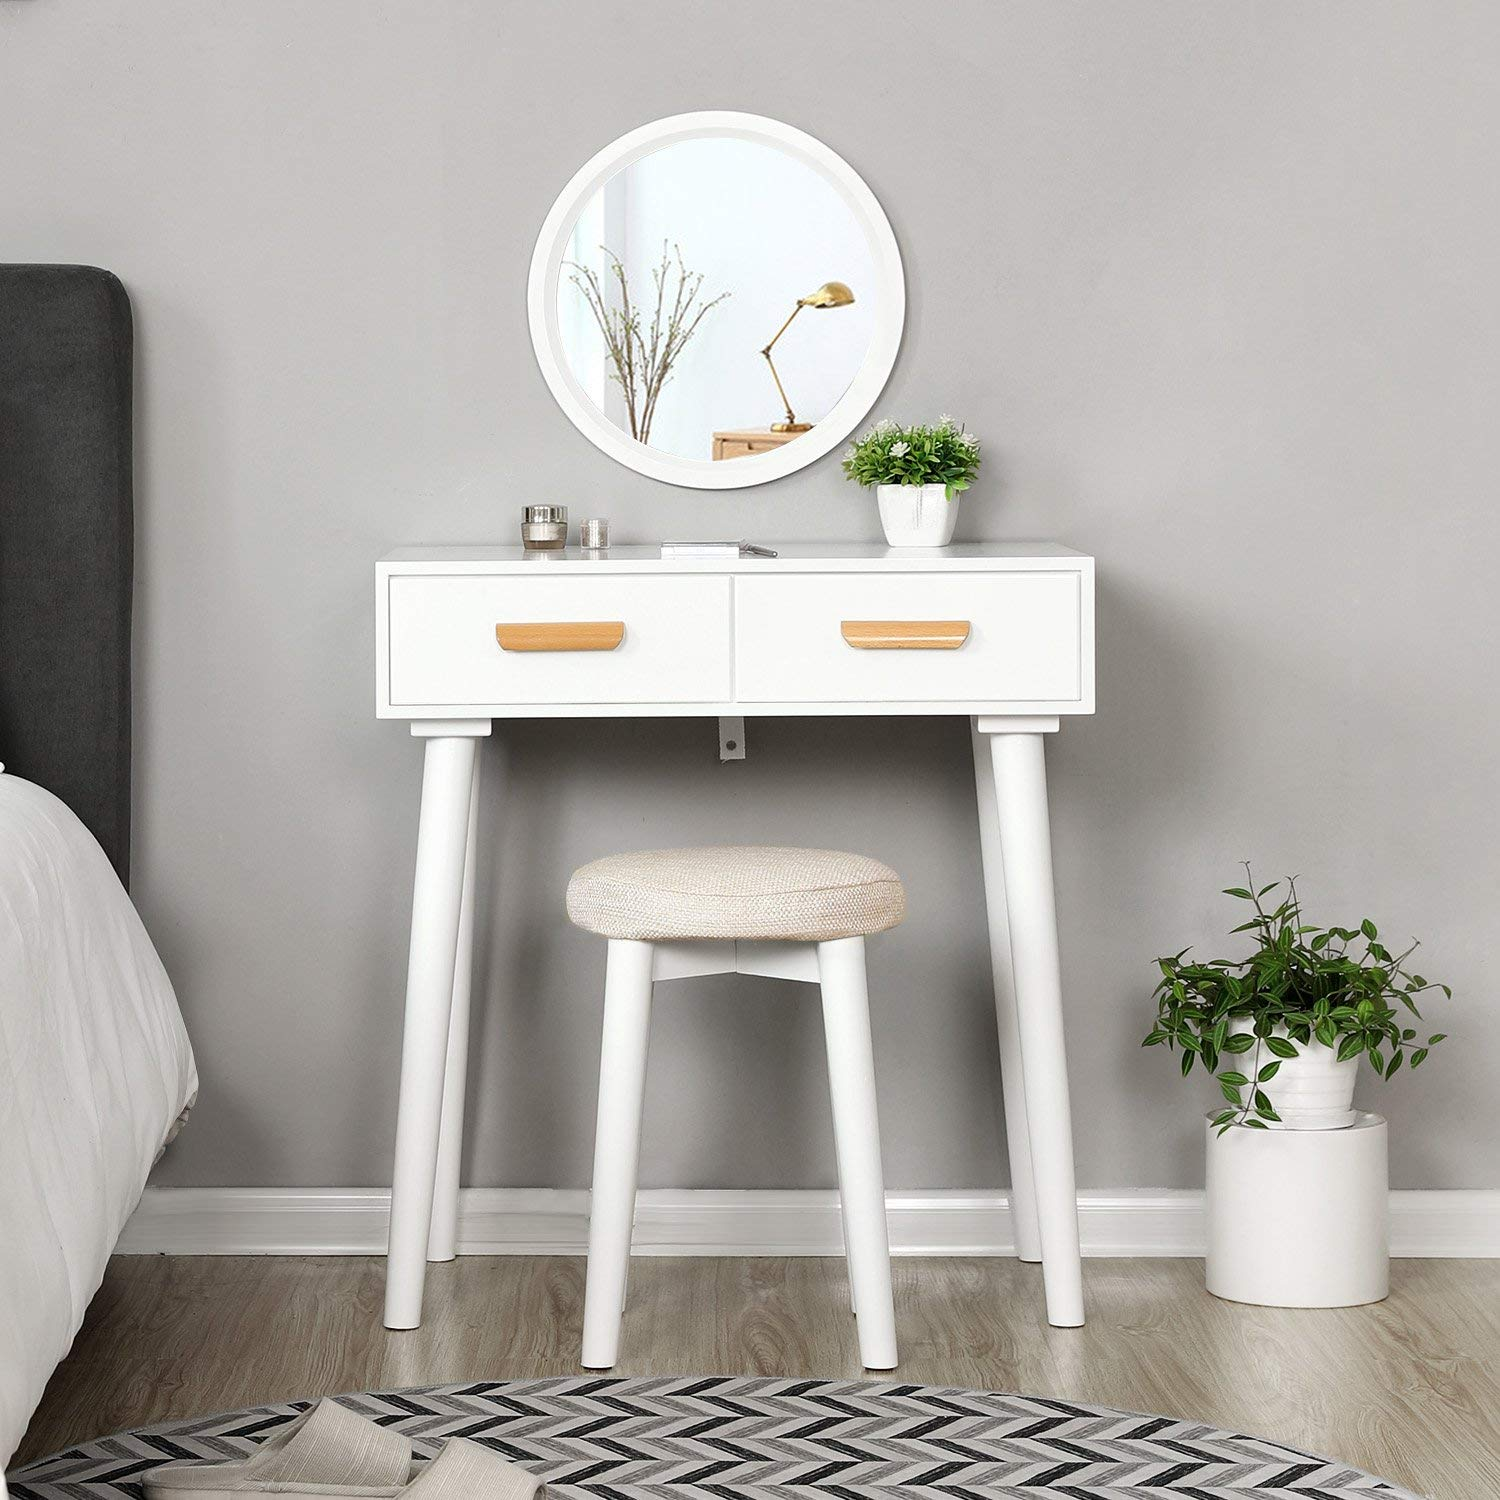 Precautions for putting a dressing table in the bedroom?